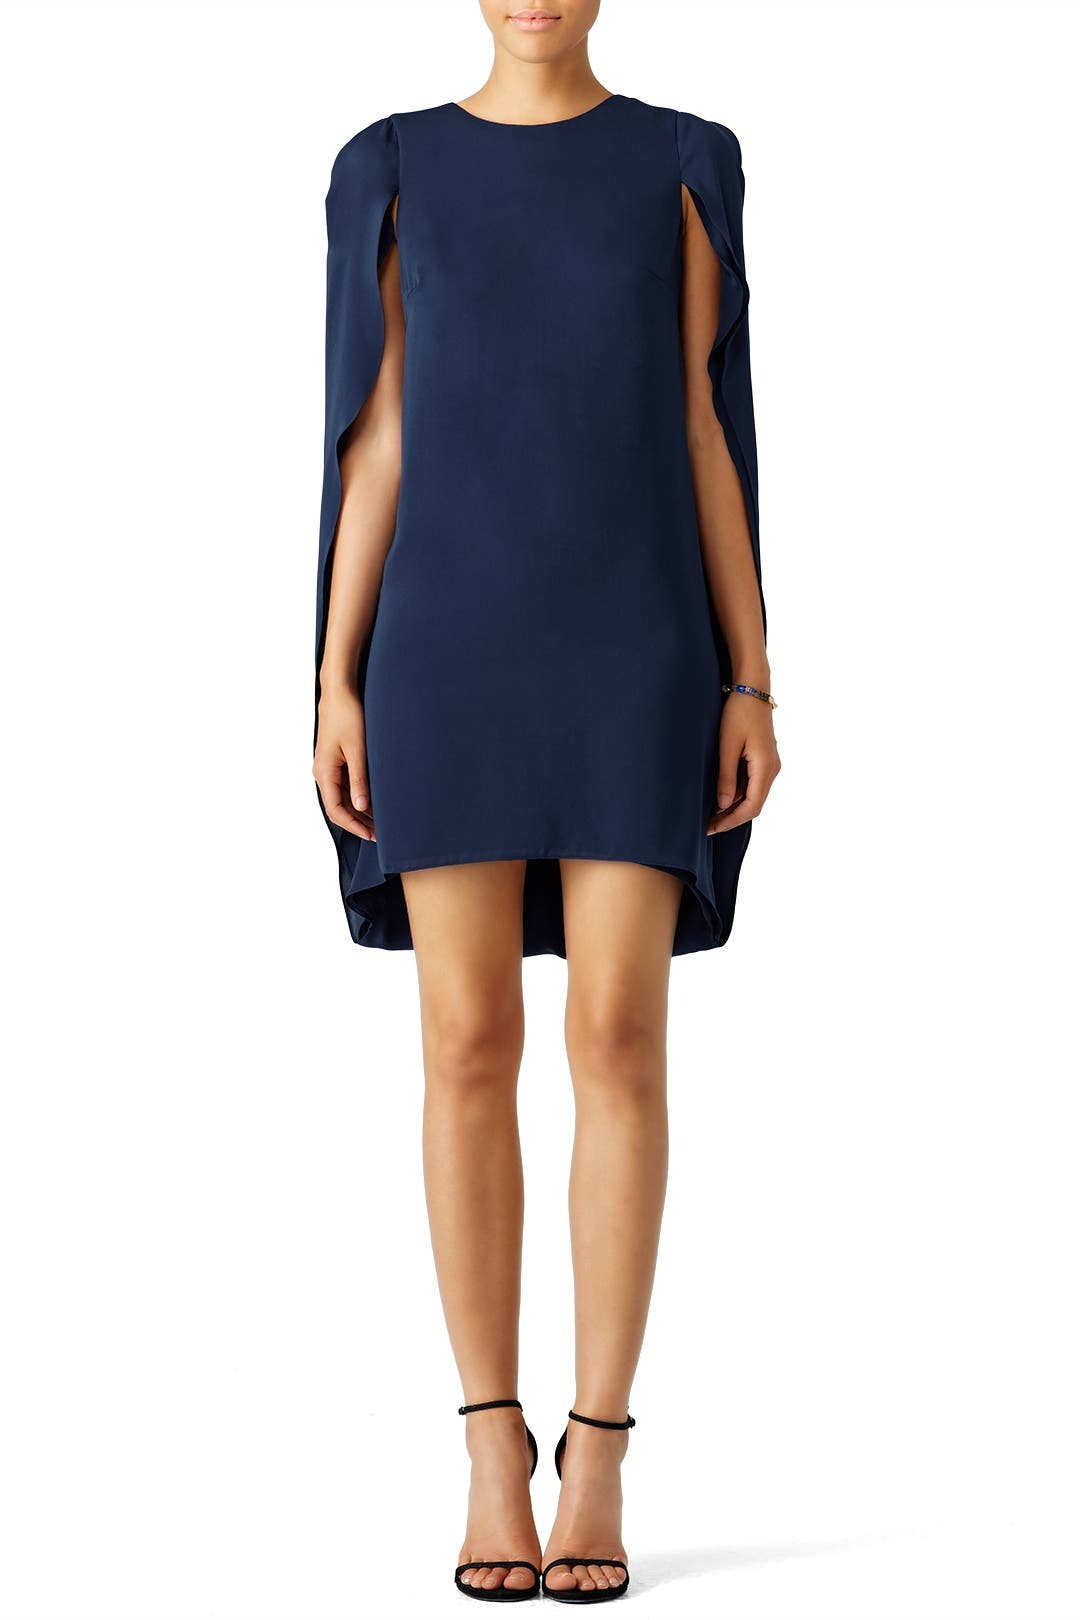 Navy Cape Dress By Halston Heritage For 55 Rent The Runway